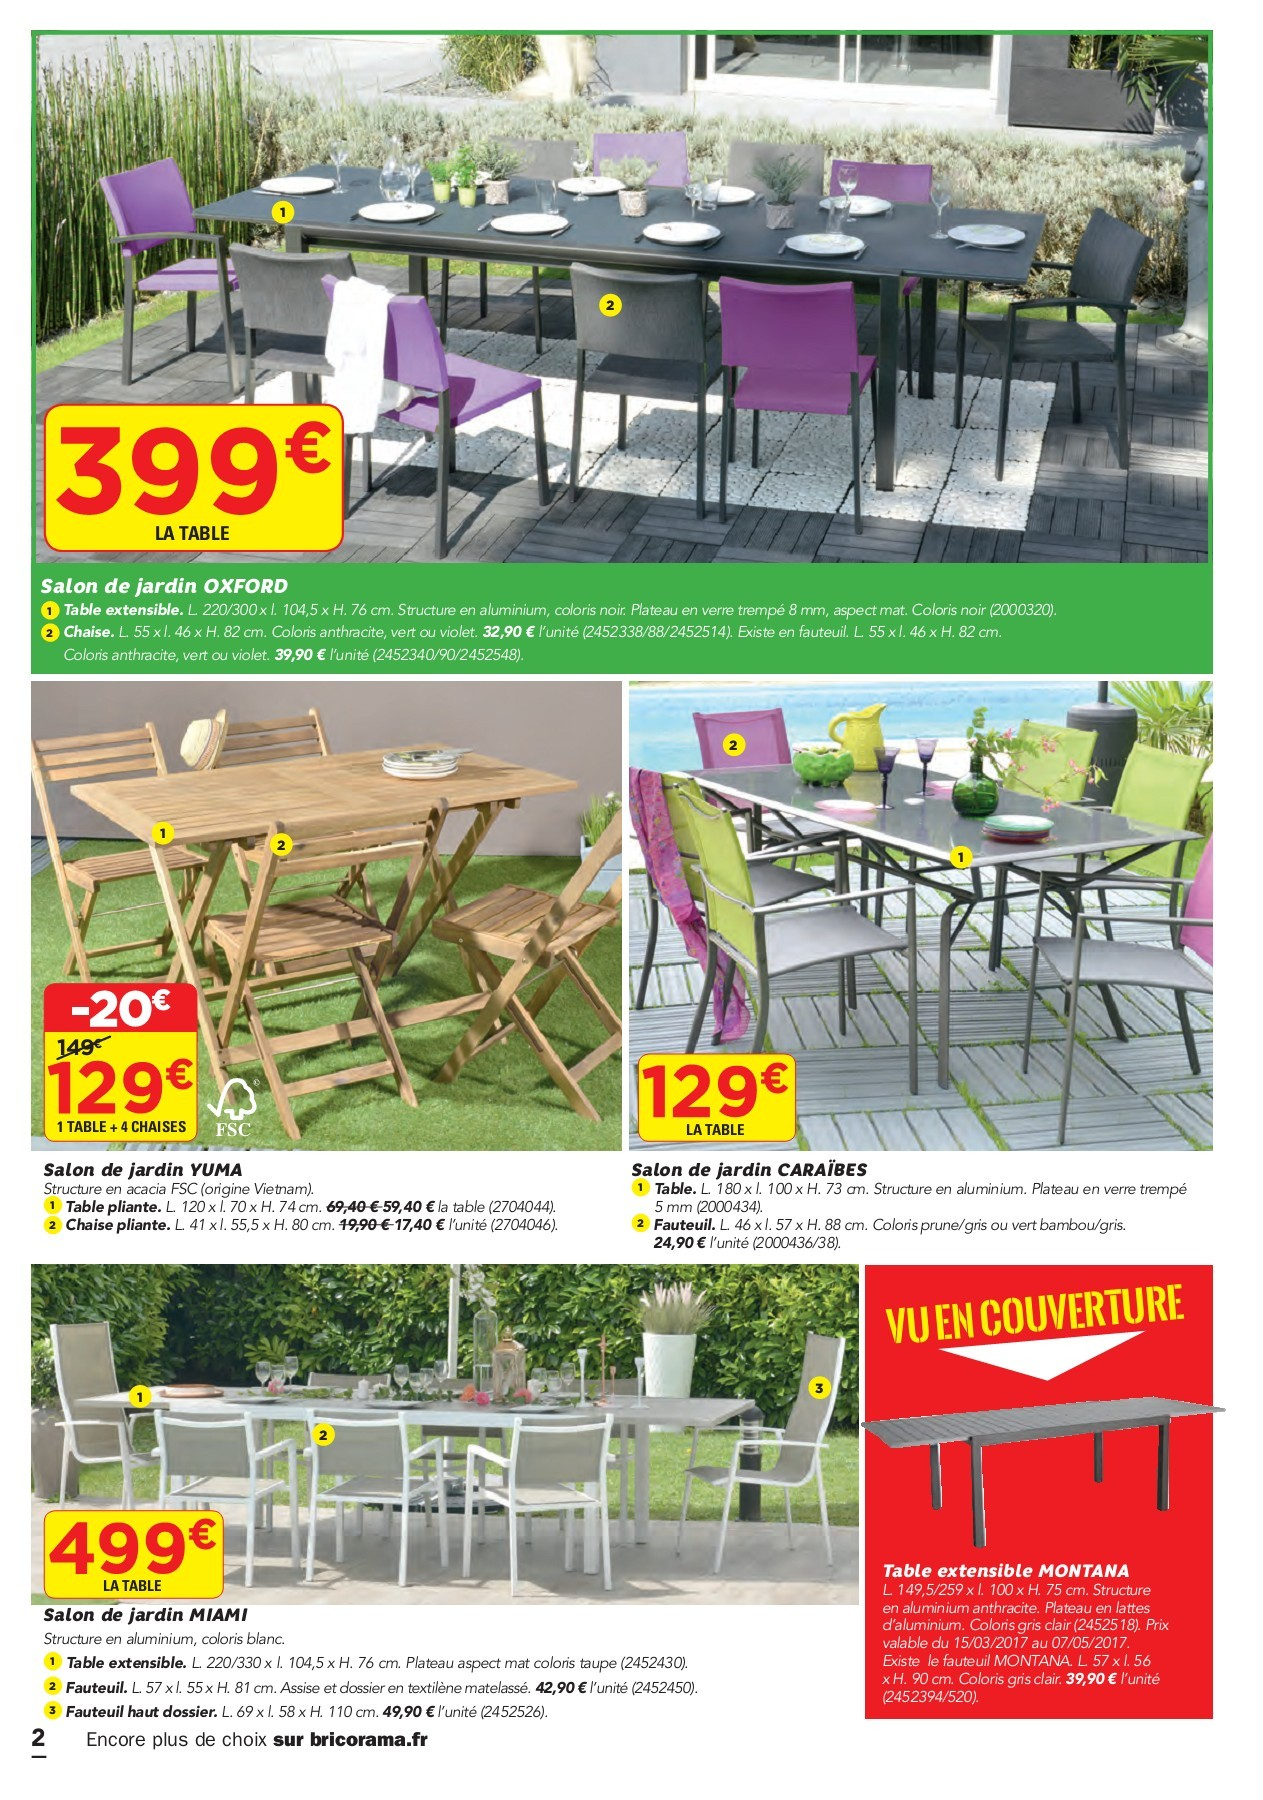 Catalogue Avril 2017 Pages 1 36 Flip Pdf Download Fliphtml5